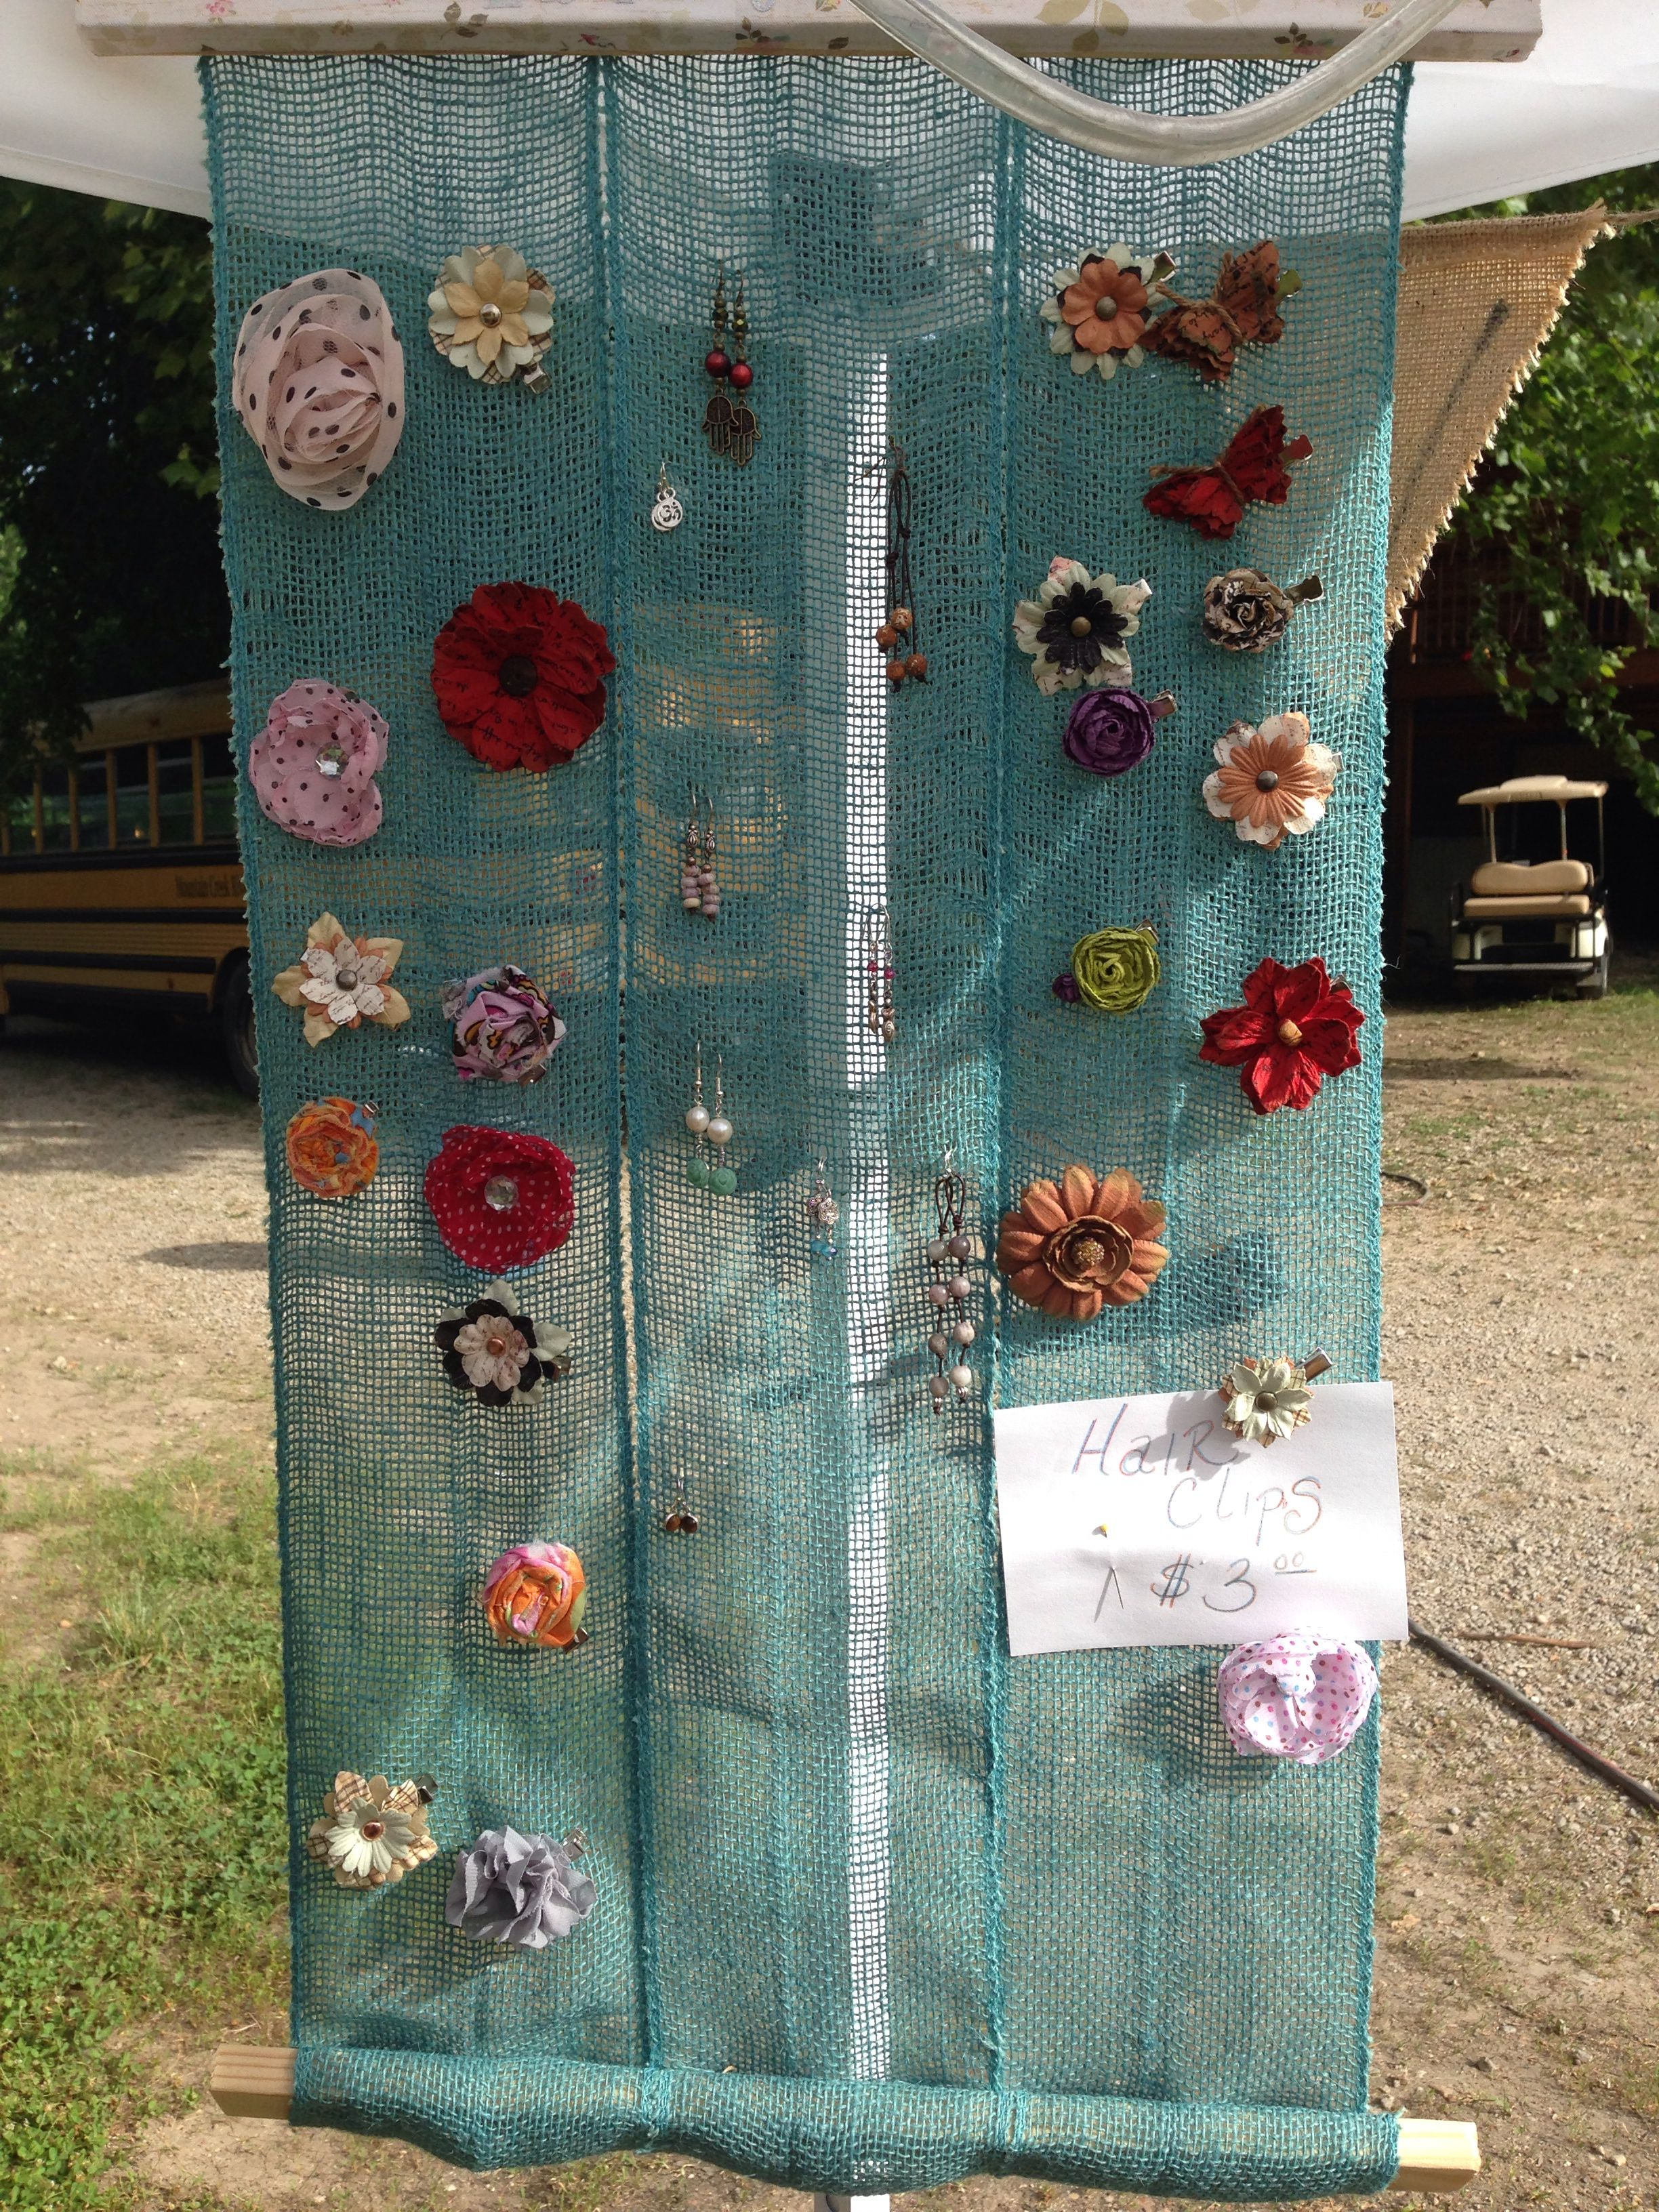 I used burlap and scrap wood to create a backdrop for earrings and hair clips.